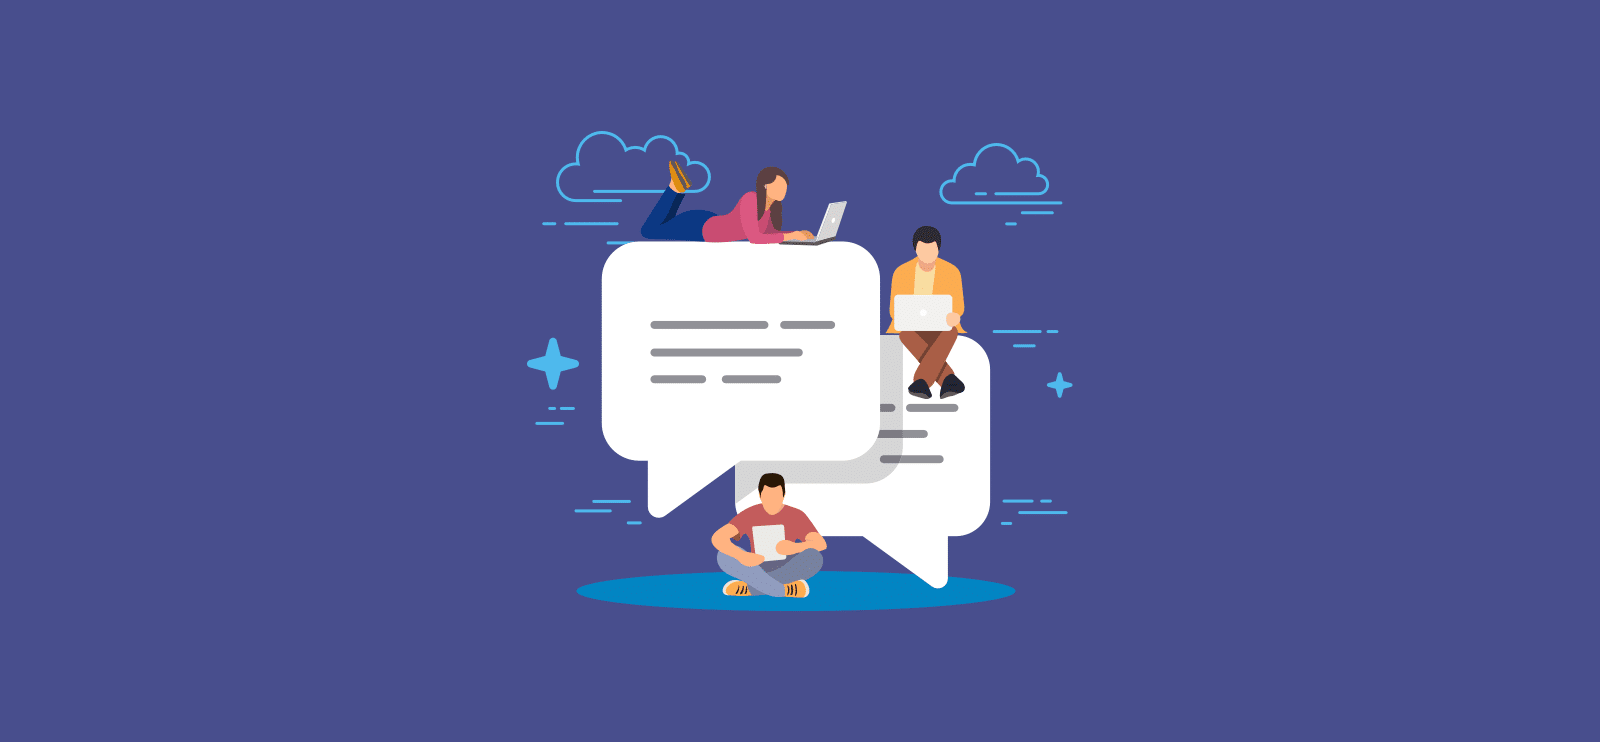 Top 4 Benefits of In-app Messaging for Your Business